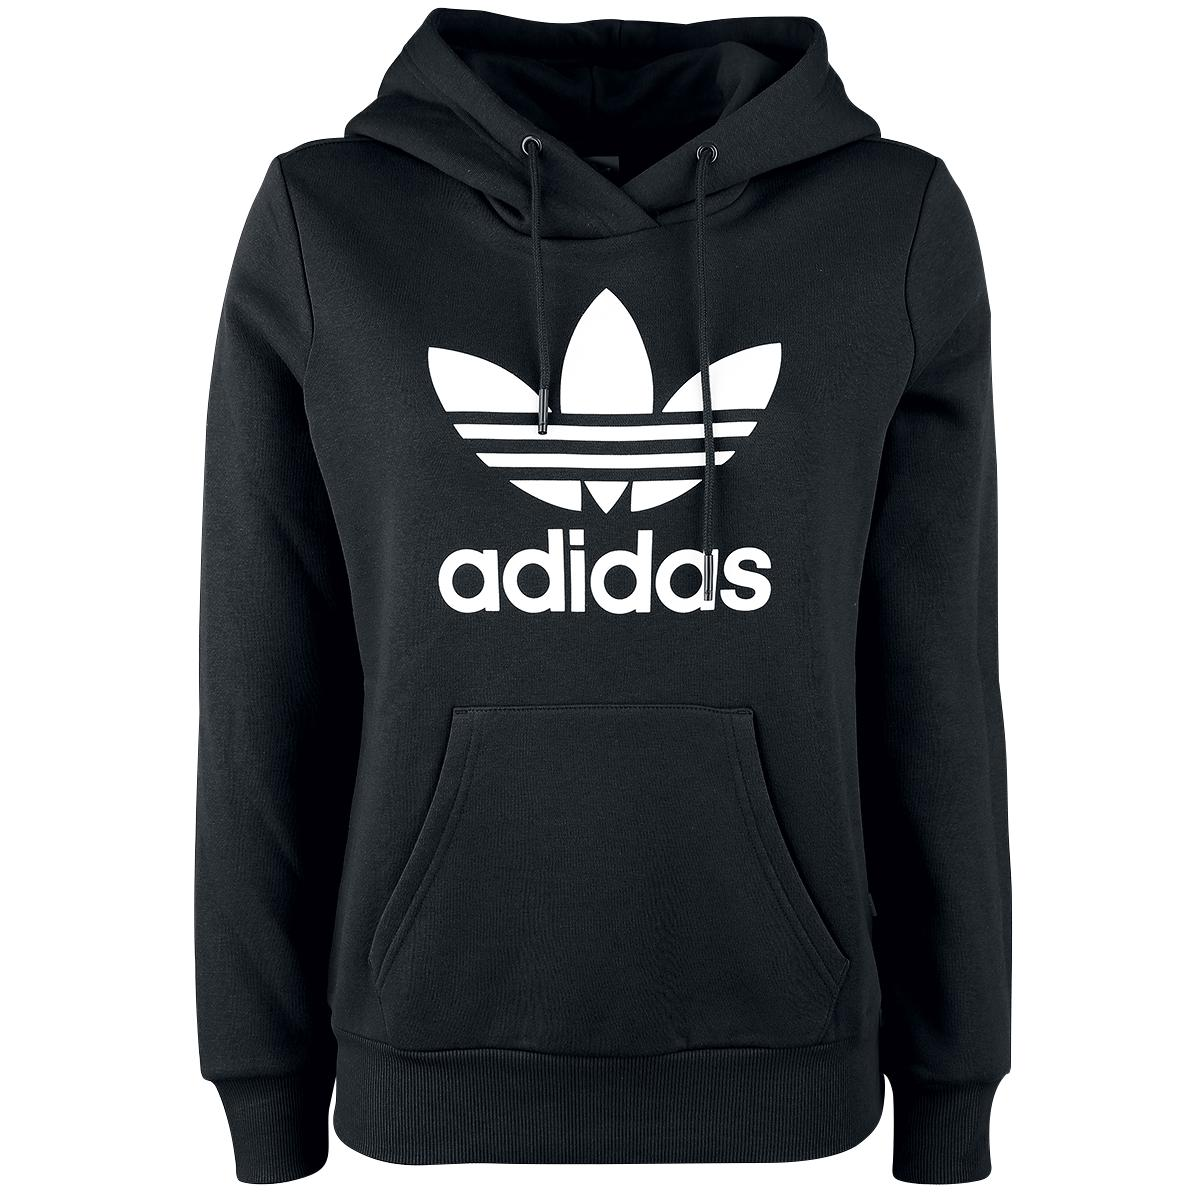 the best attitude 7e9d8 93950 adidas Originals Trefoil Pull Over Hoodie - Mens - Casual - Clothing - Black  White   Style Guide.   Adidas hoodie mens, Adidas sweatshirt mens, Adidas  ...